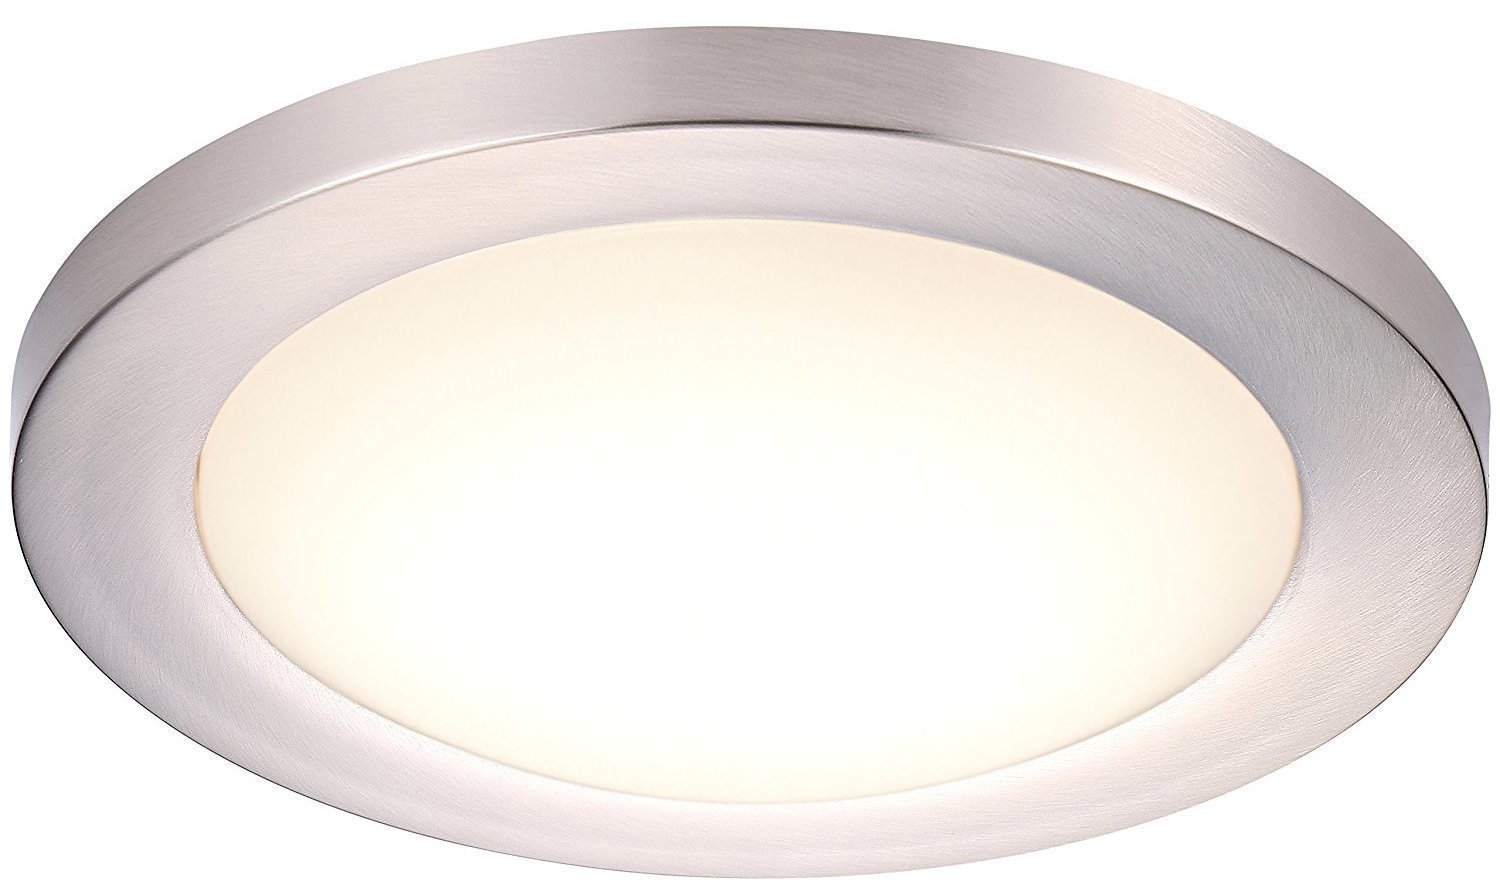 Cloudy Bay 12 inch LED Flush Mount Ceiling Light 4000K Cool White Dimmable 17W 1100lm -120W Incandescent Equivalent,Brushed Nickel Finish by Cloudy Bay (Image #1)